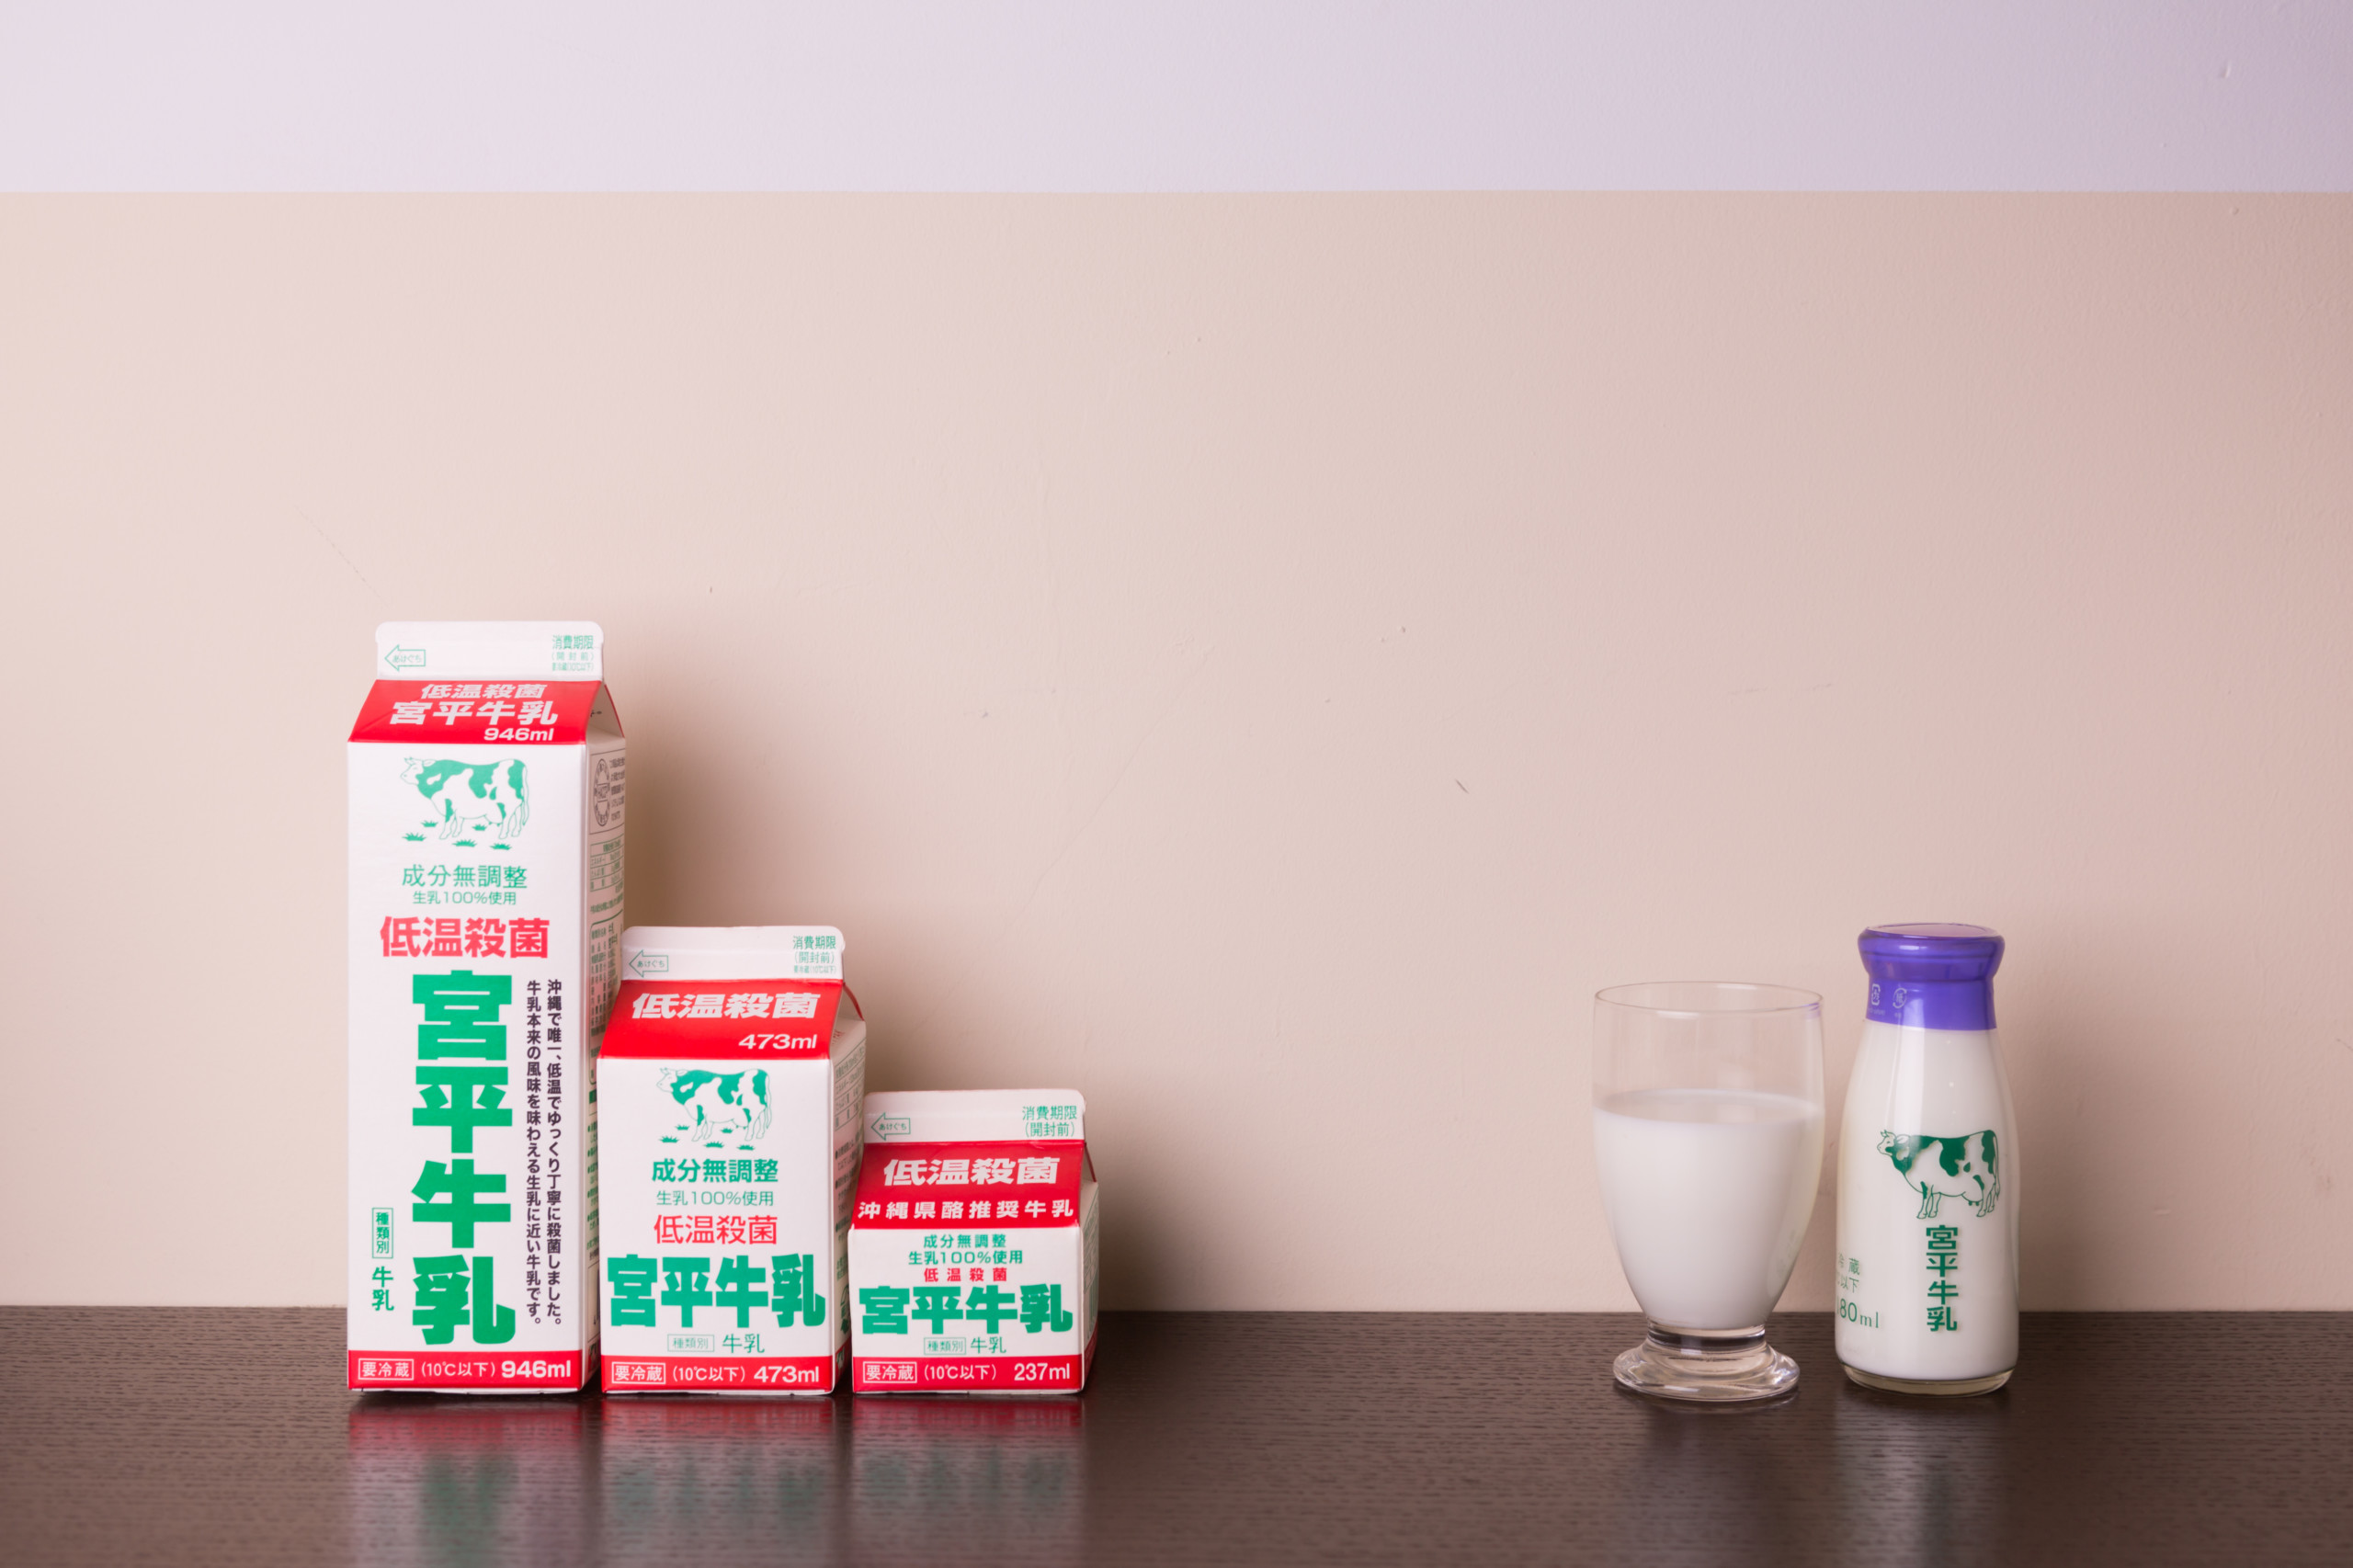 About MIYAHIRA MILK PRODUCTS